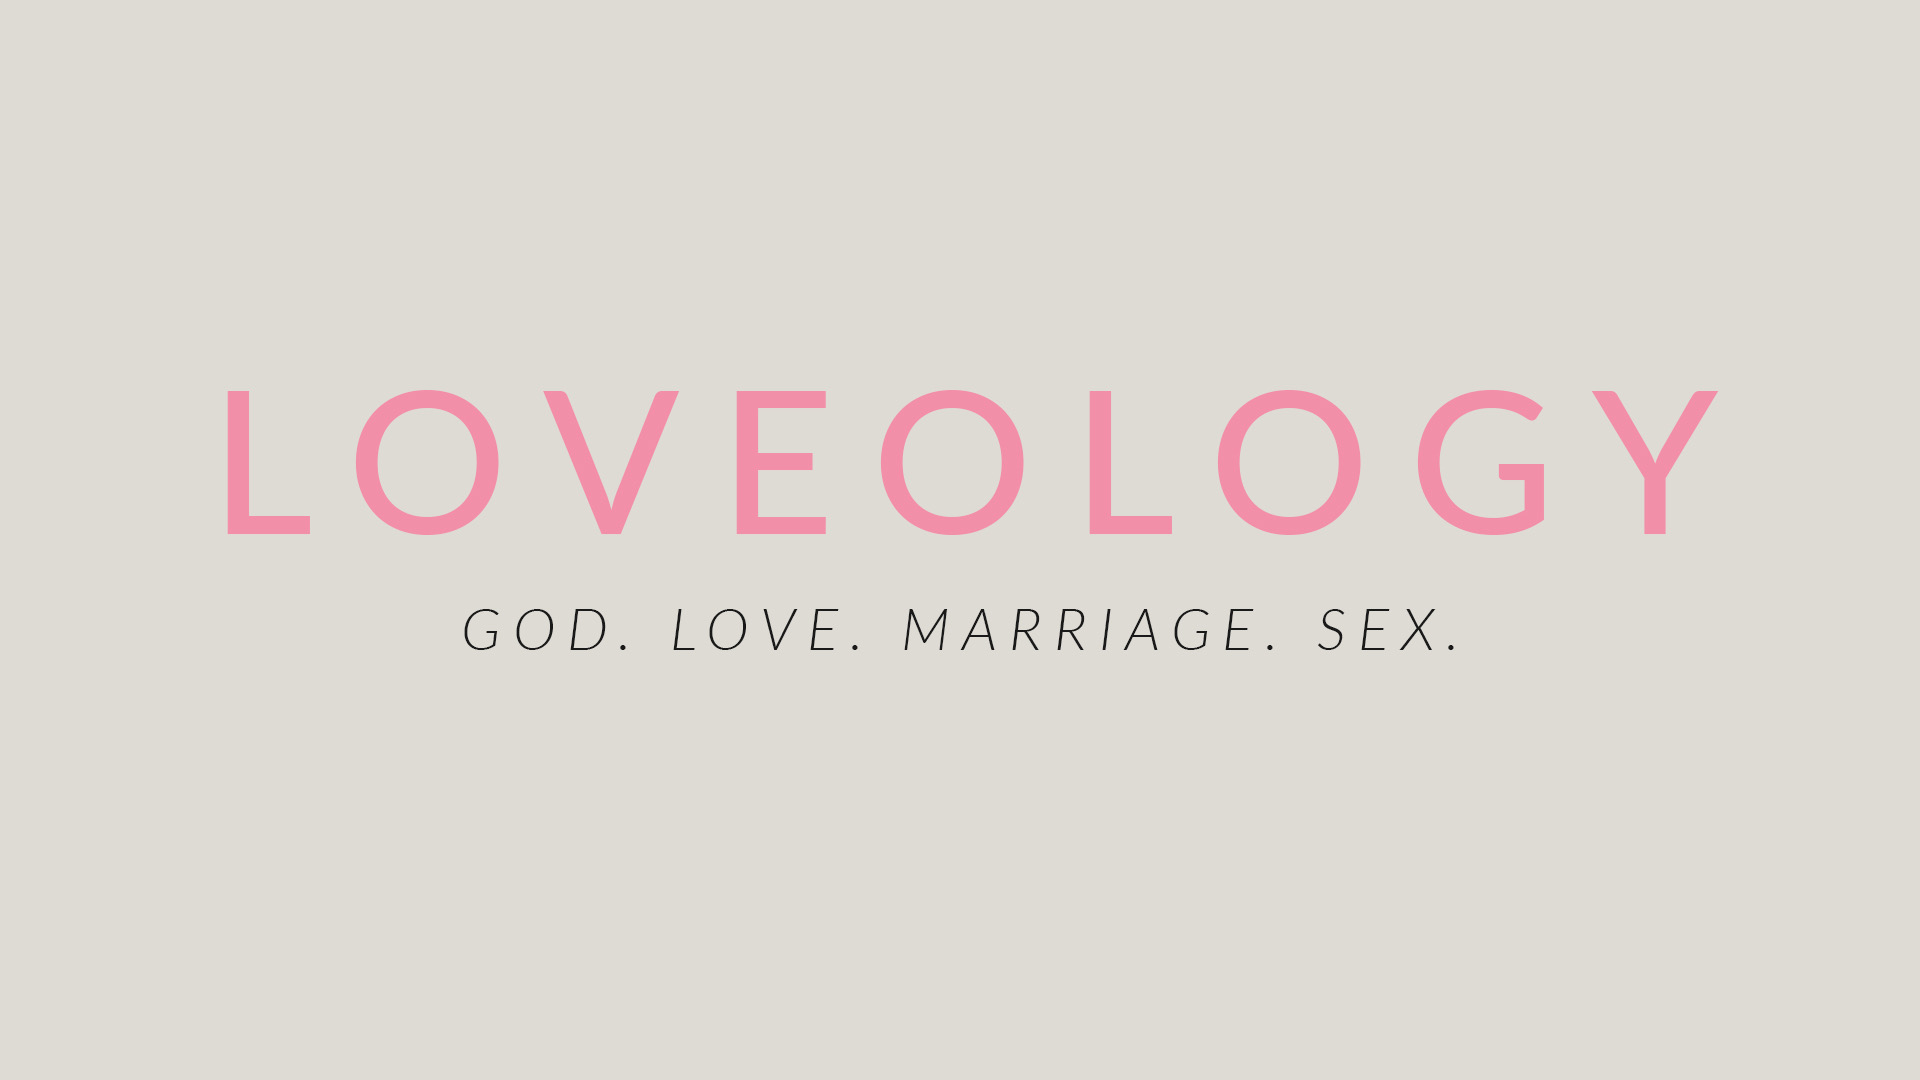 Loveology.jpeg